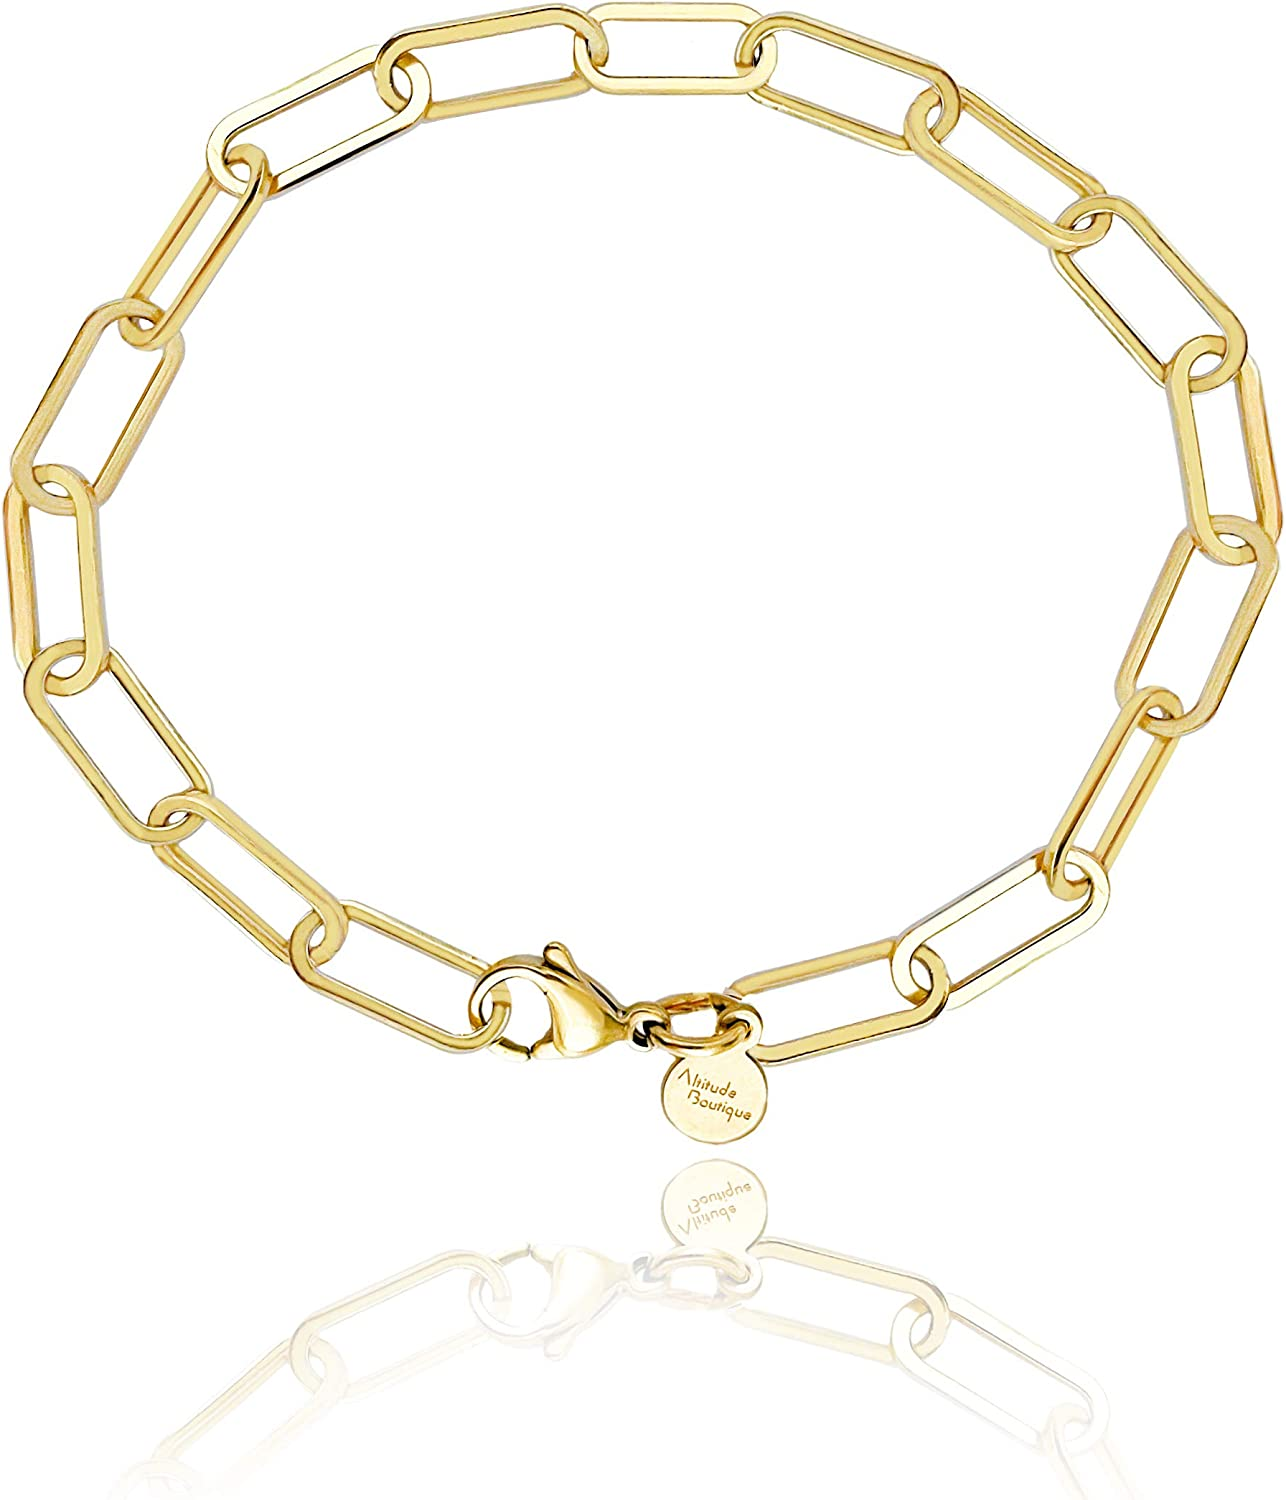 Altitude Boutique Paper Link Necklace Thick Chain 18k Gold Plated Bracelet For Women Thick Gold Chain Bracelet Necklace Set (Gold)